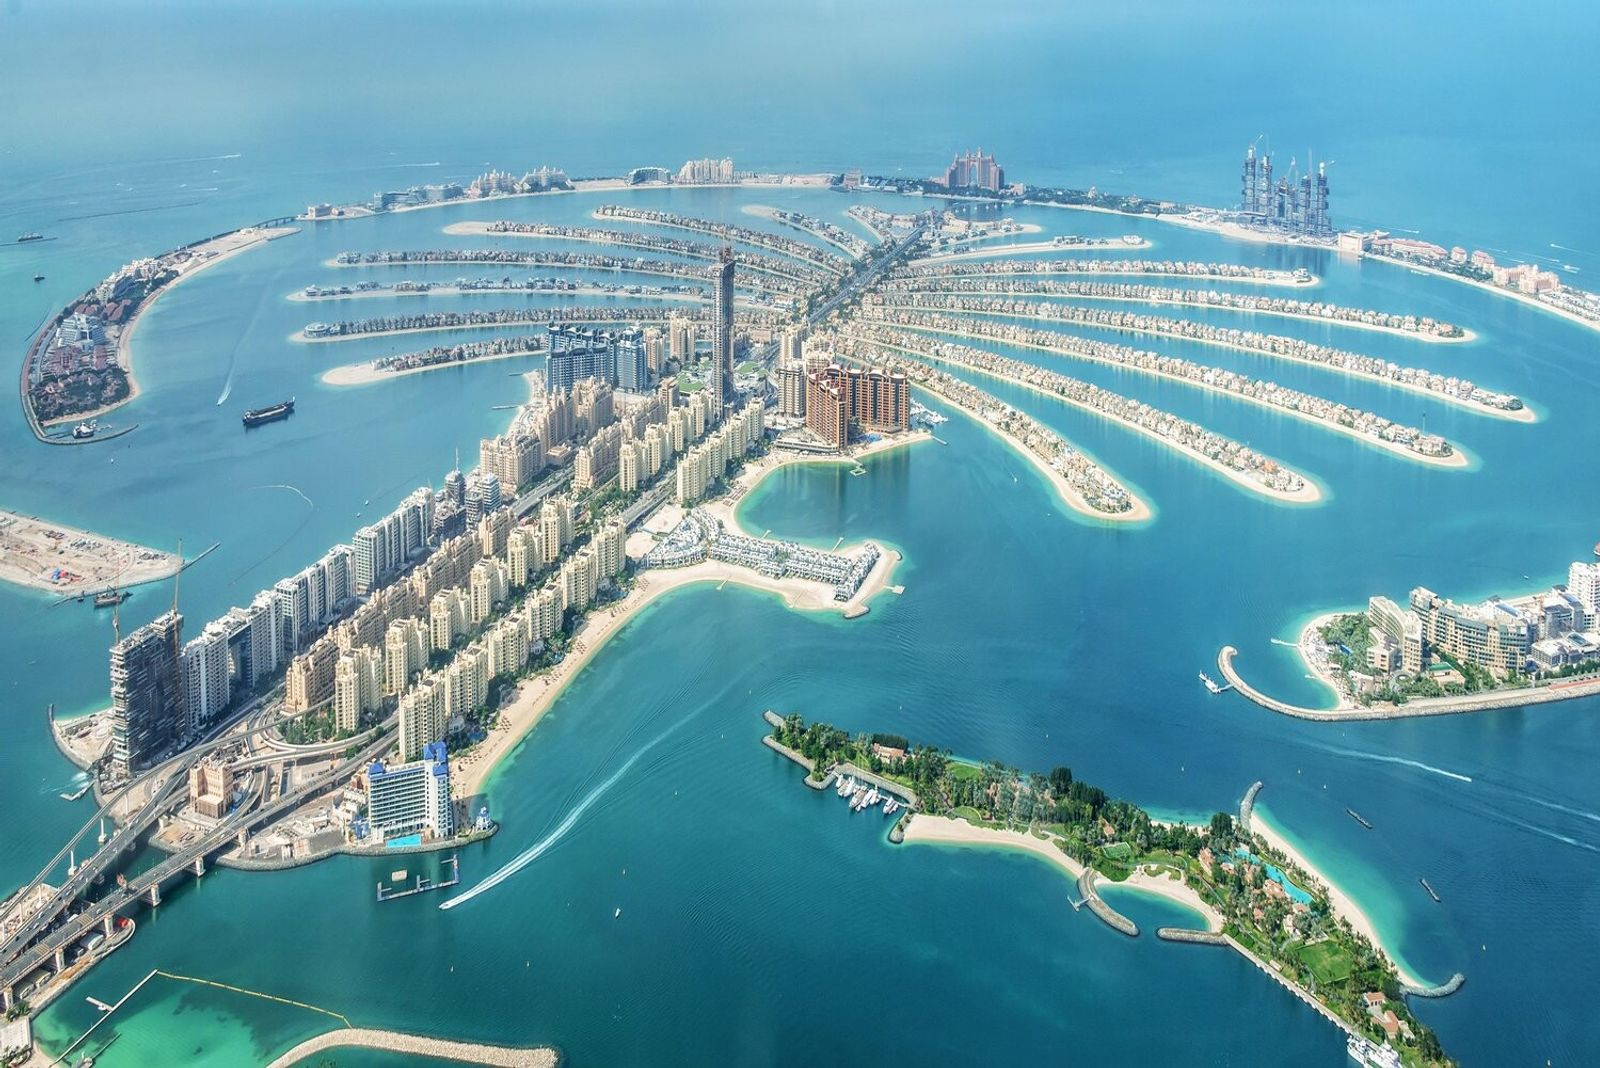 Dubai Palm Jumeirah island, one of the so-called 'Palm Islands', three reclamation developments in the Persian ...